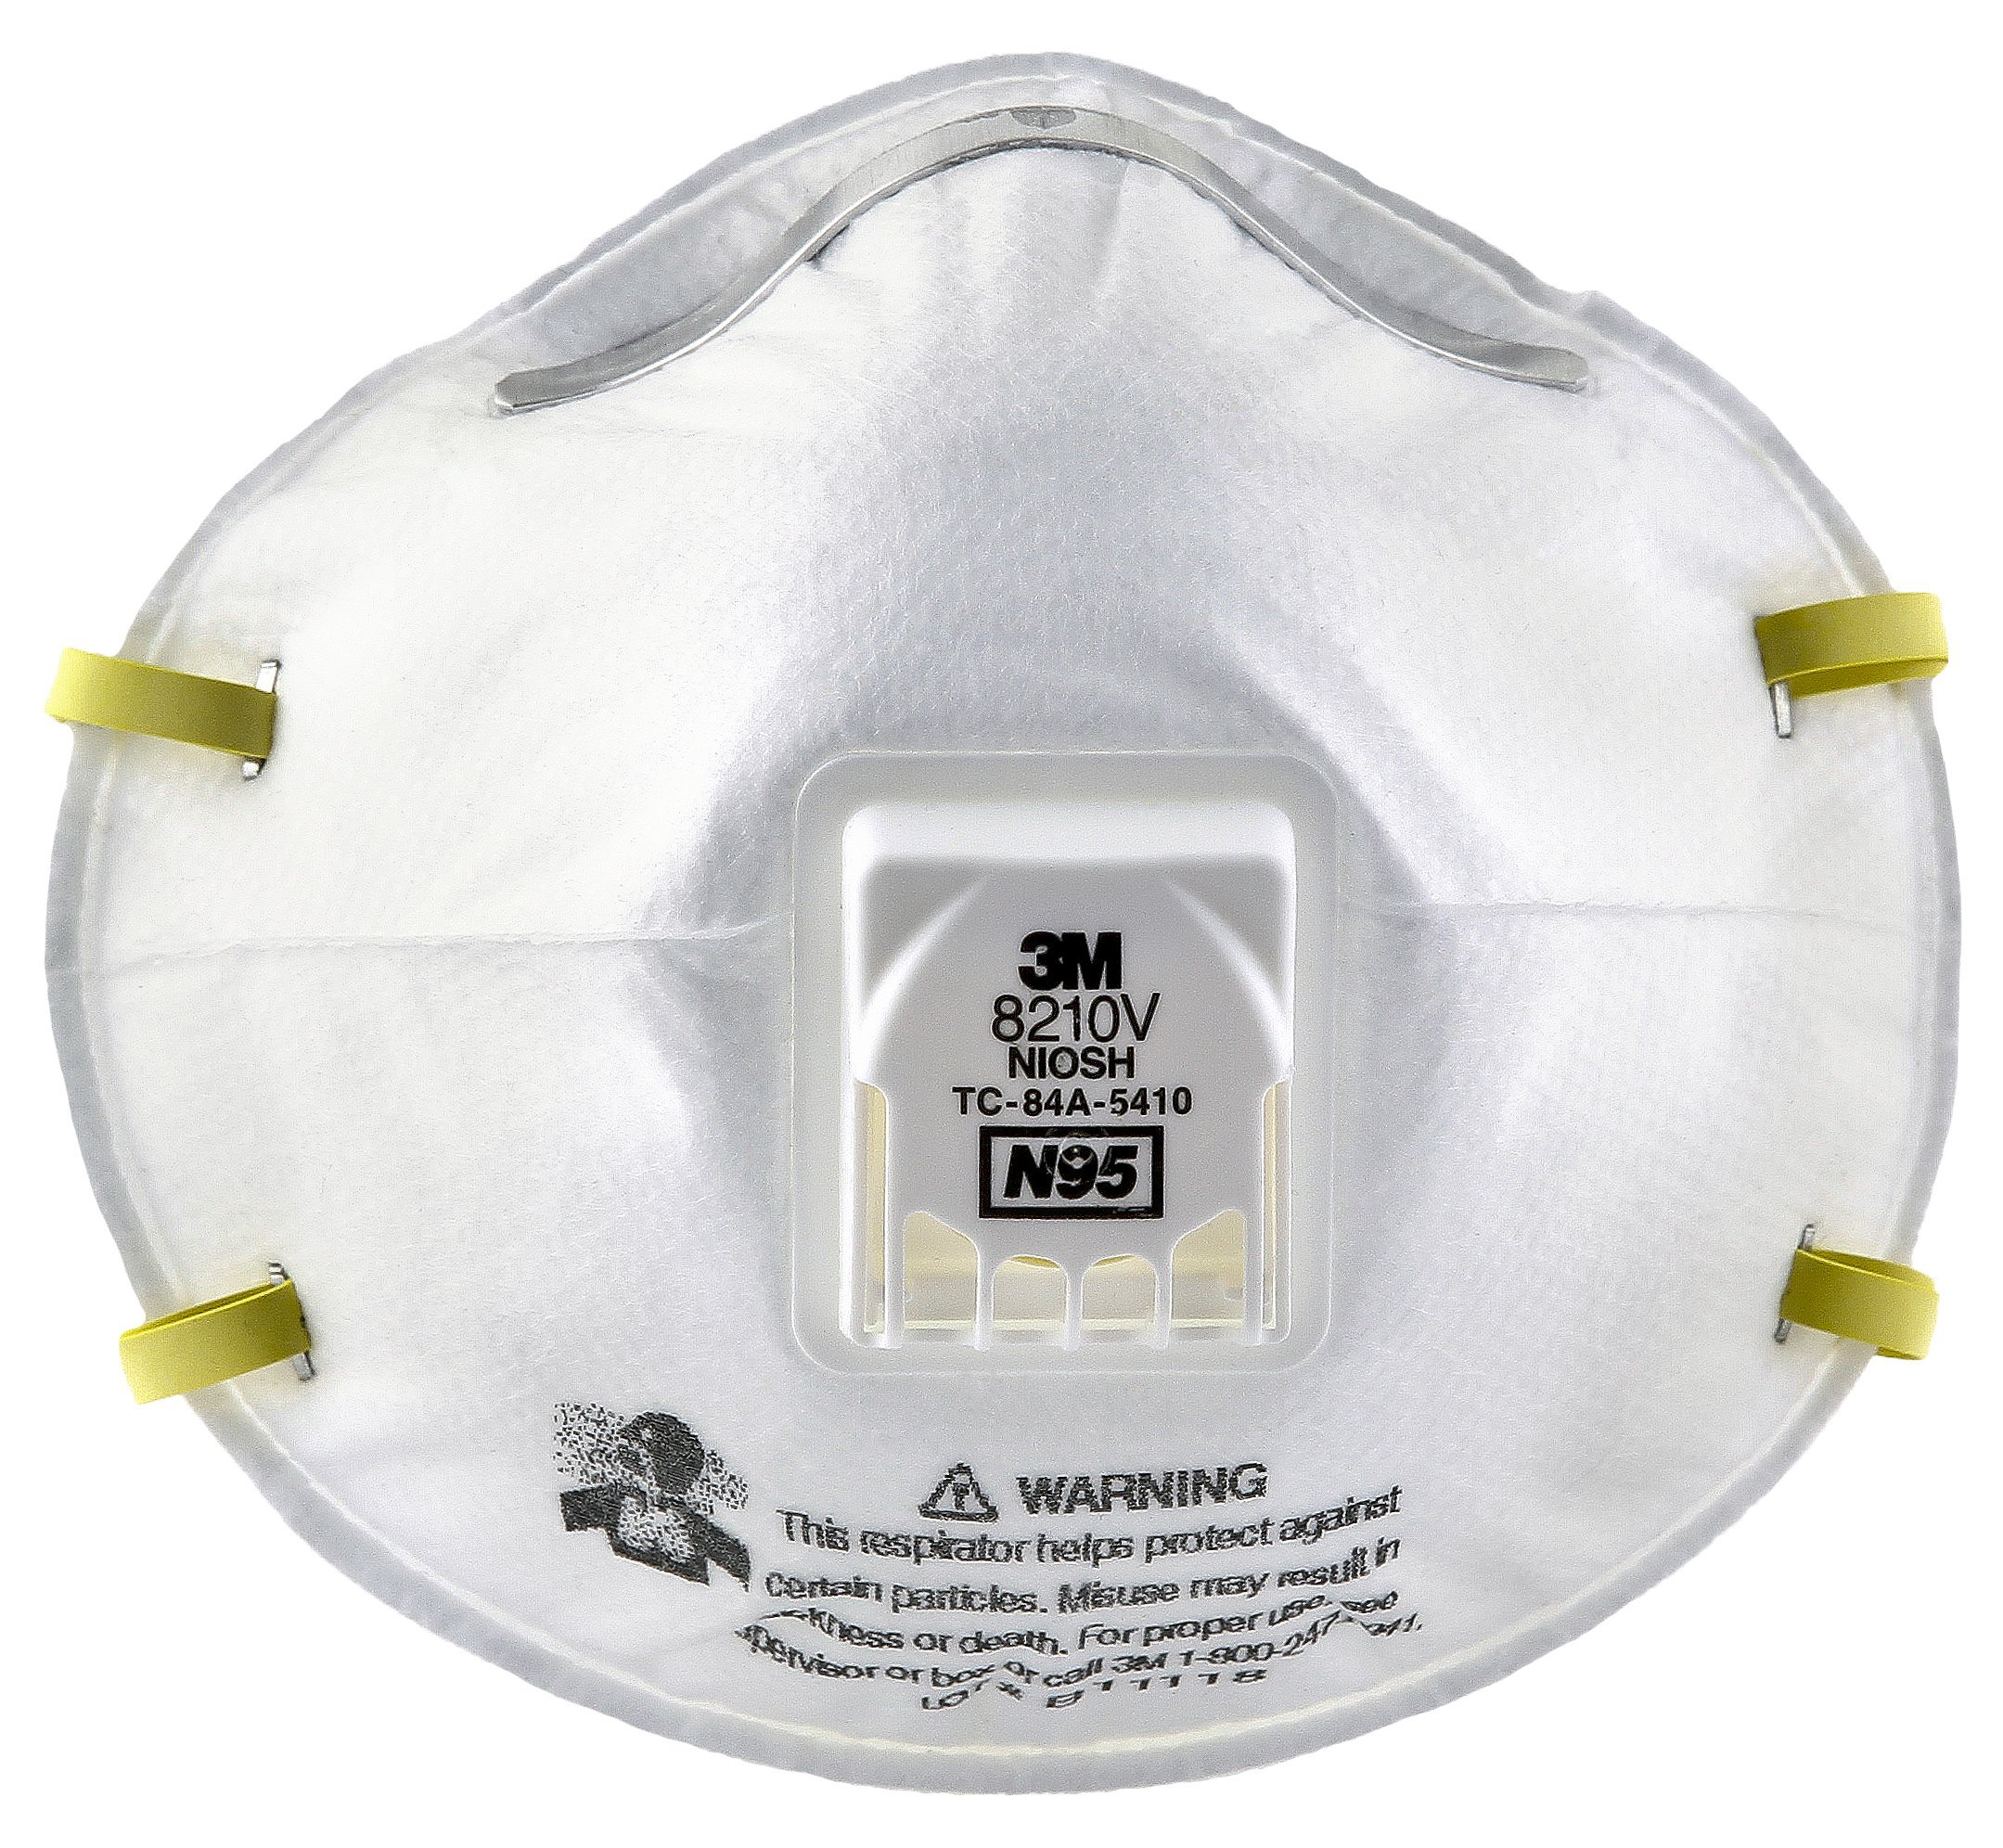 3M 8210V Particulate Respirator with Cool Flow Valve, Grinding, Sanding, Sawing, Sweeping, Woodworking, Dust, 10/Box by 3M